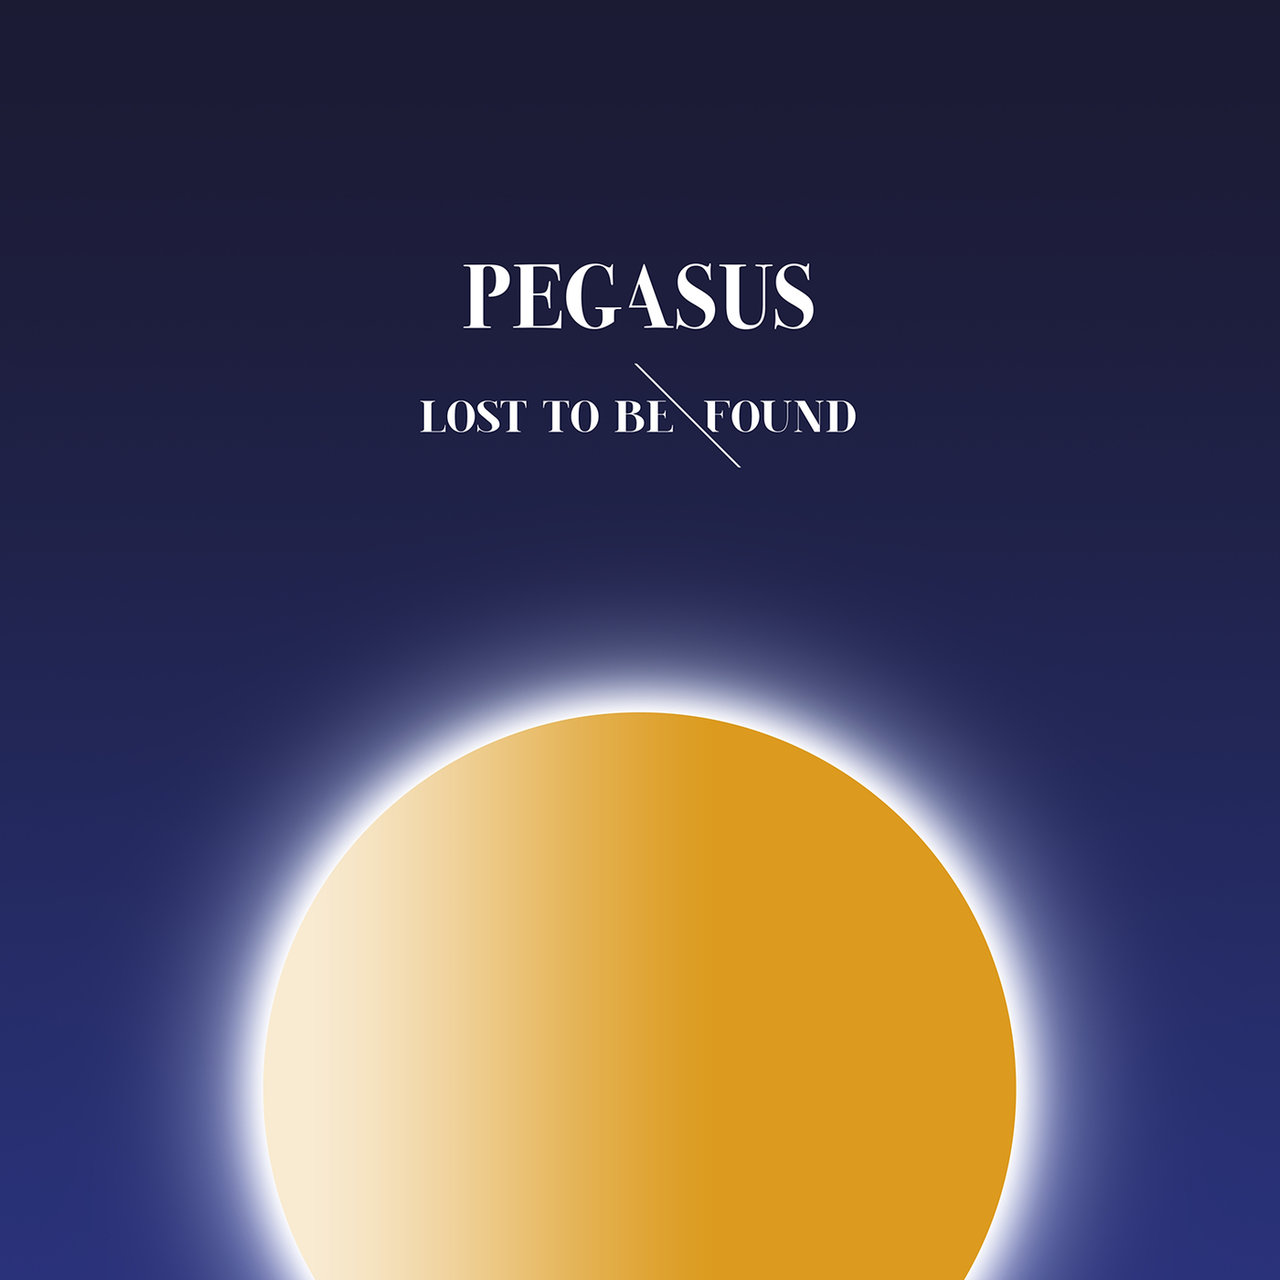 Pegasus - The Epic Quest - 2011